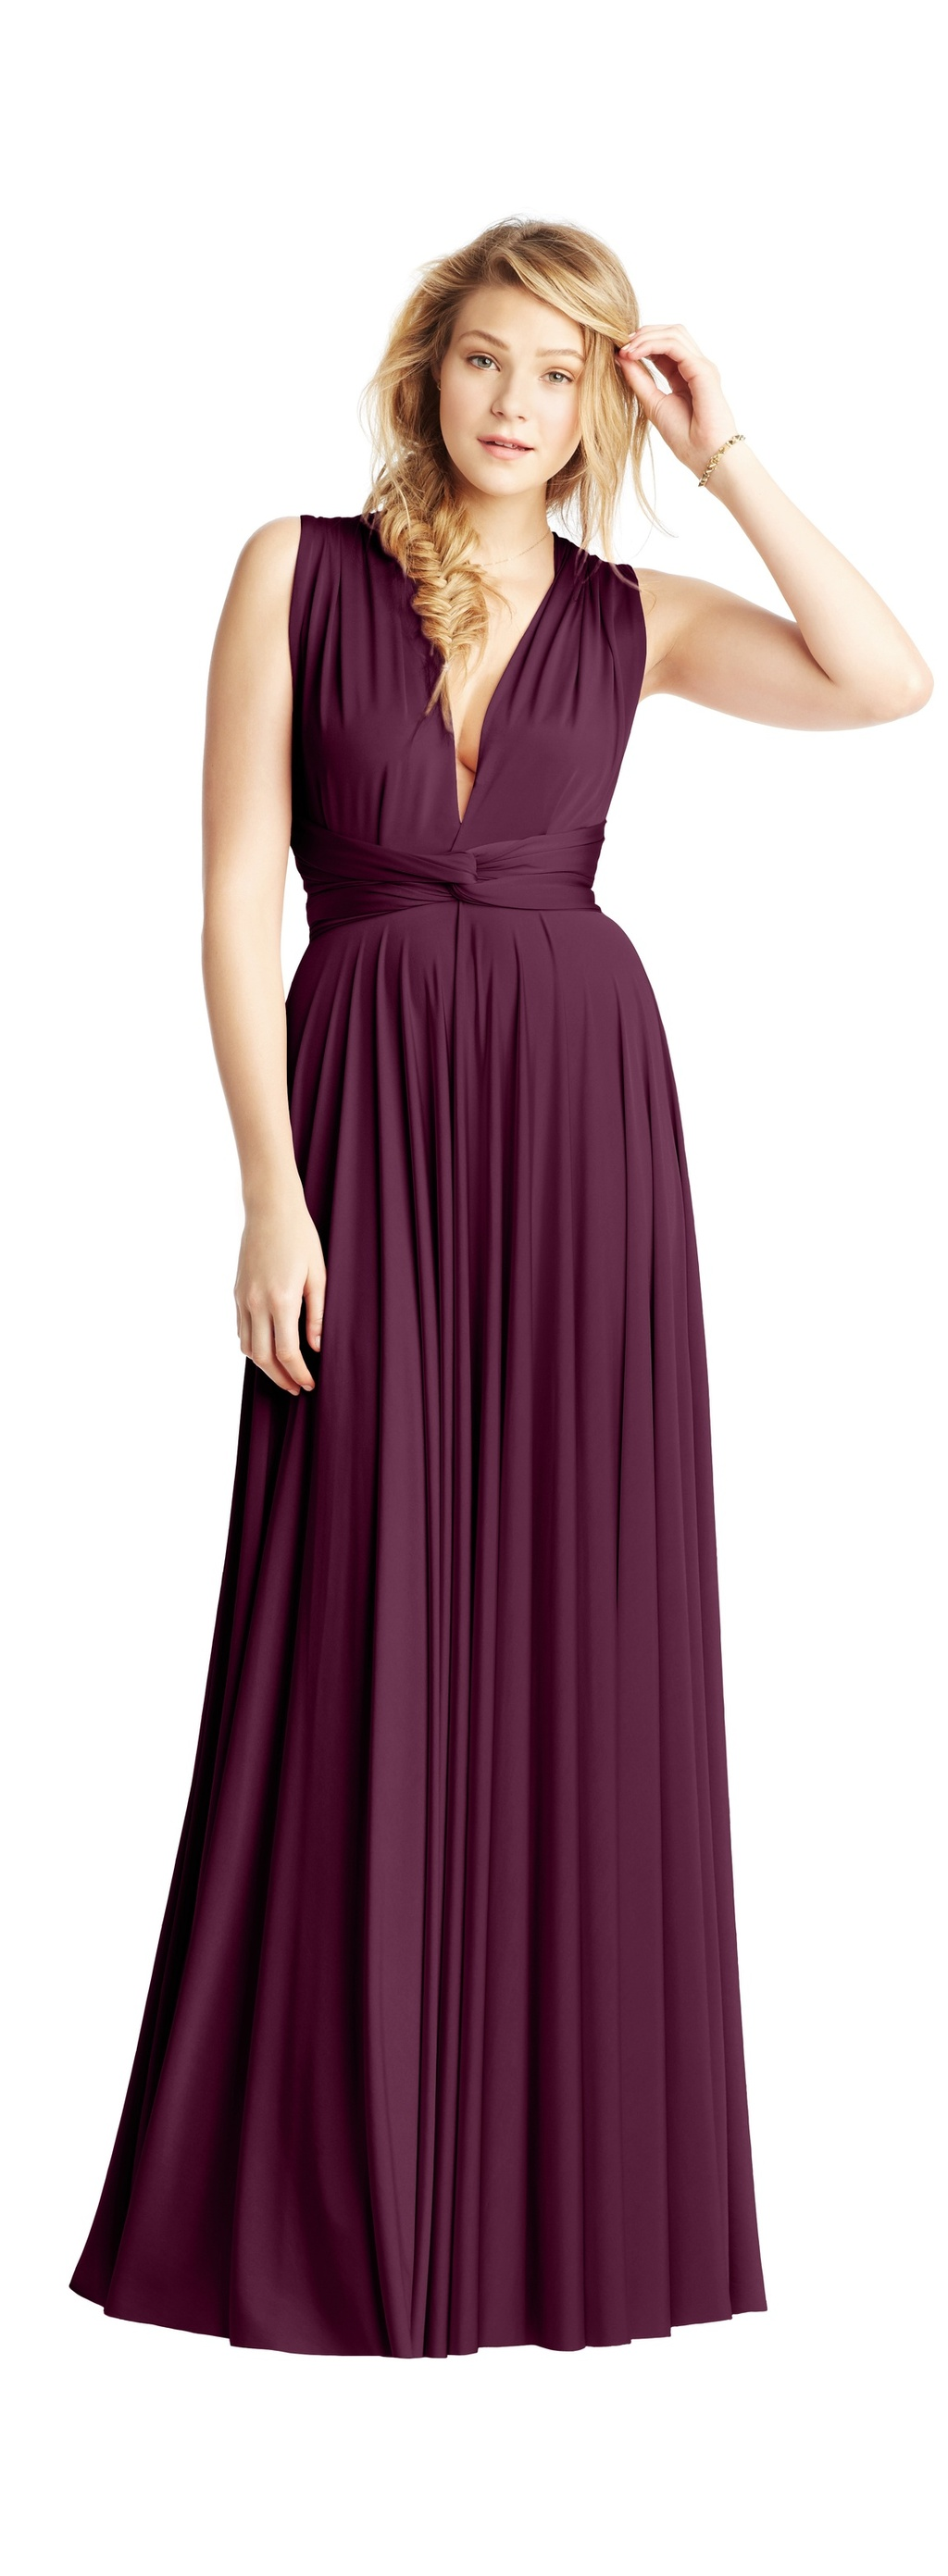 Two-birds-bridesmaid-dress-2013-weddings-wine.full